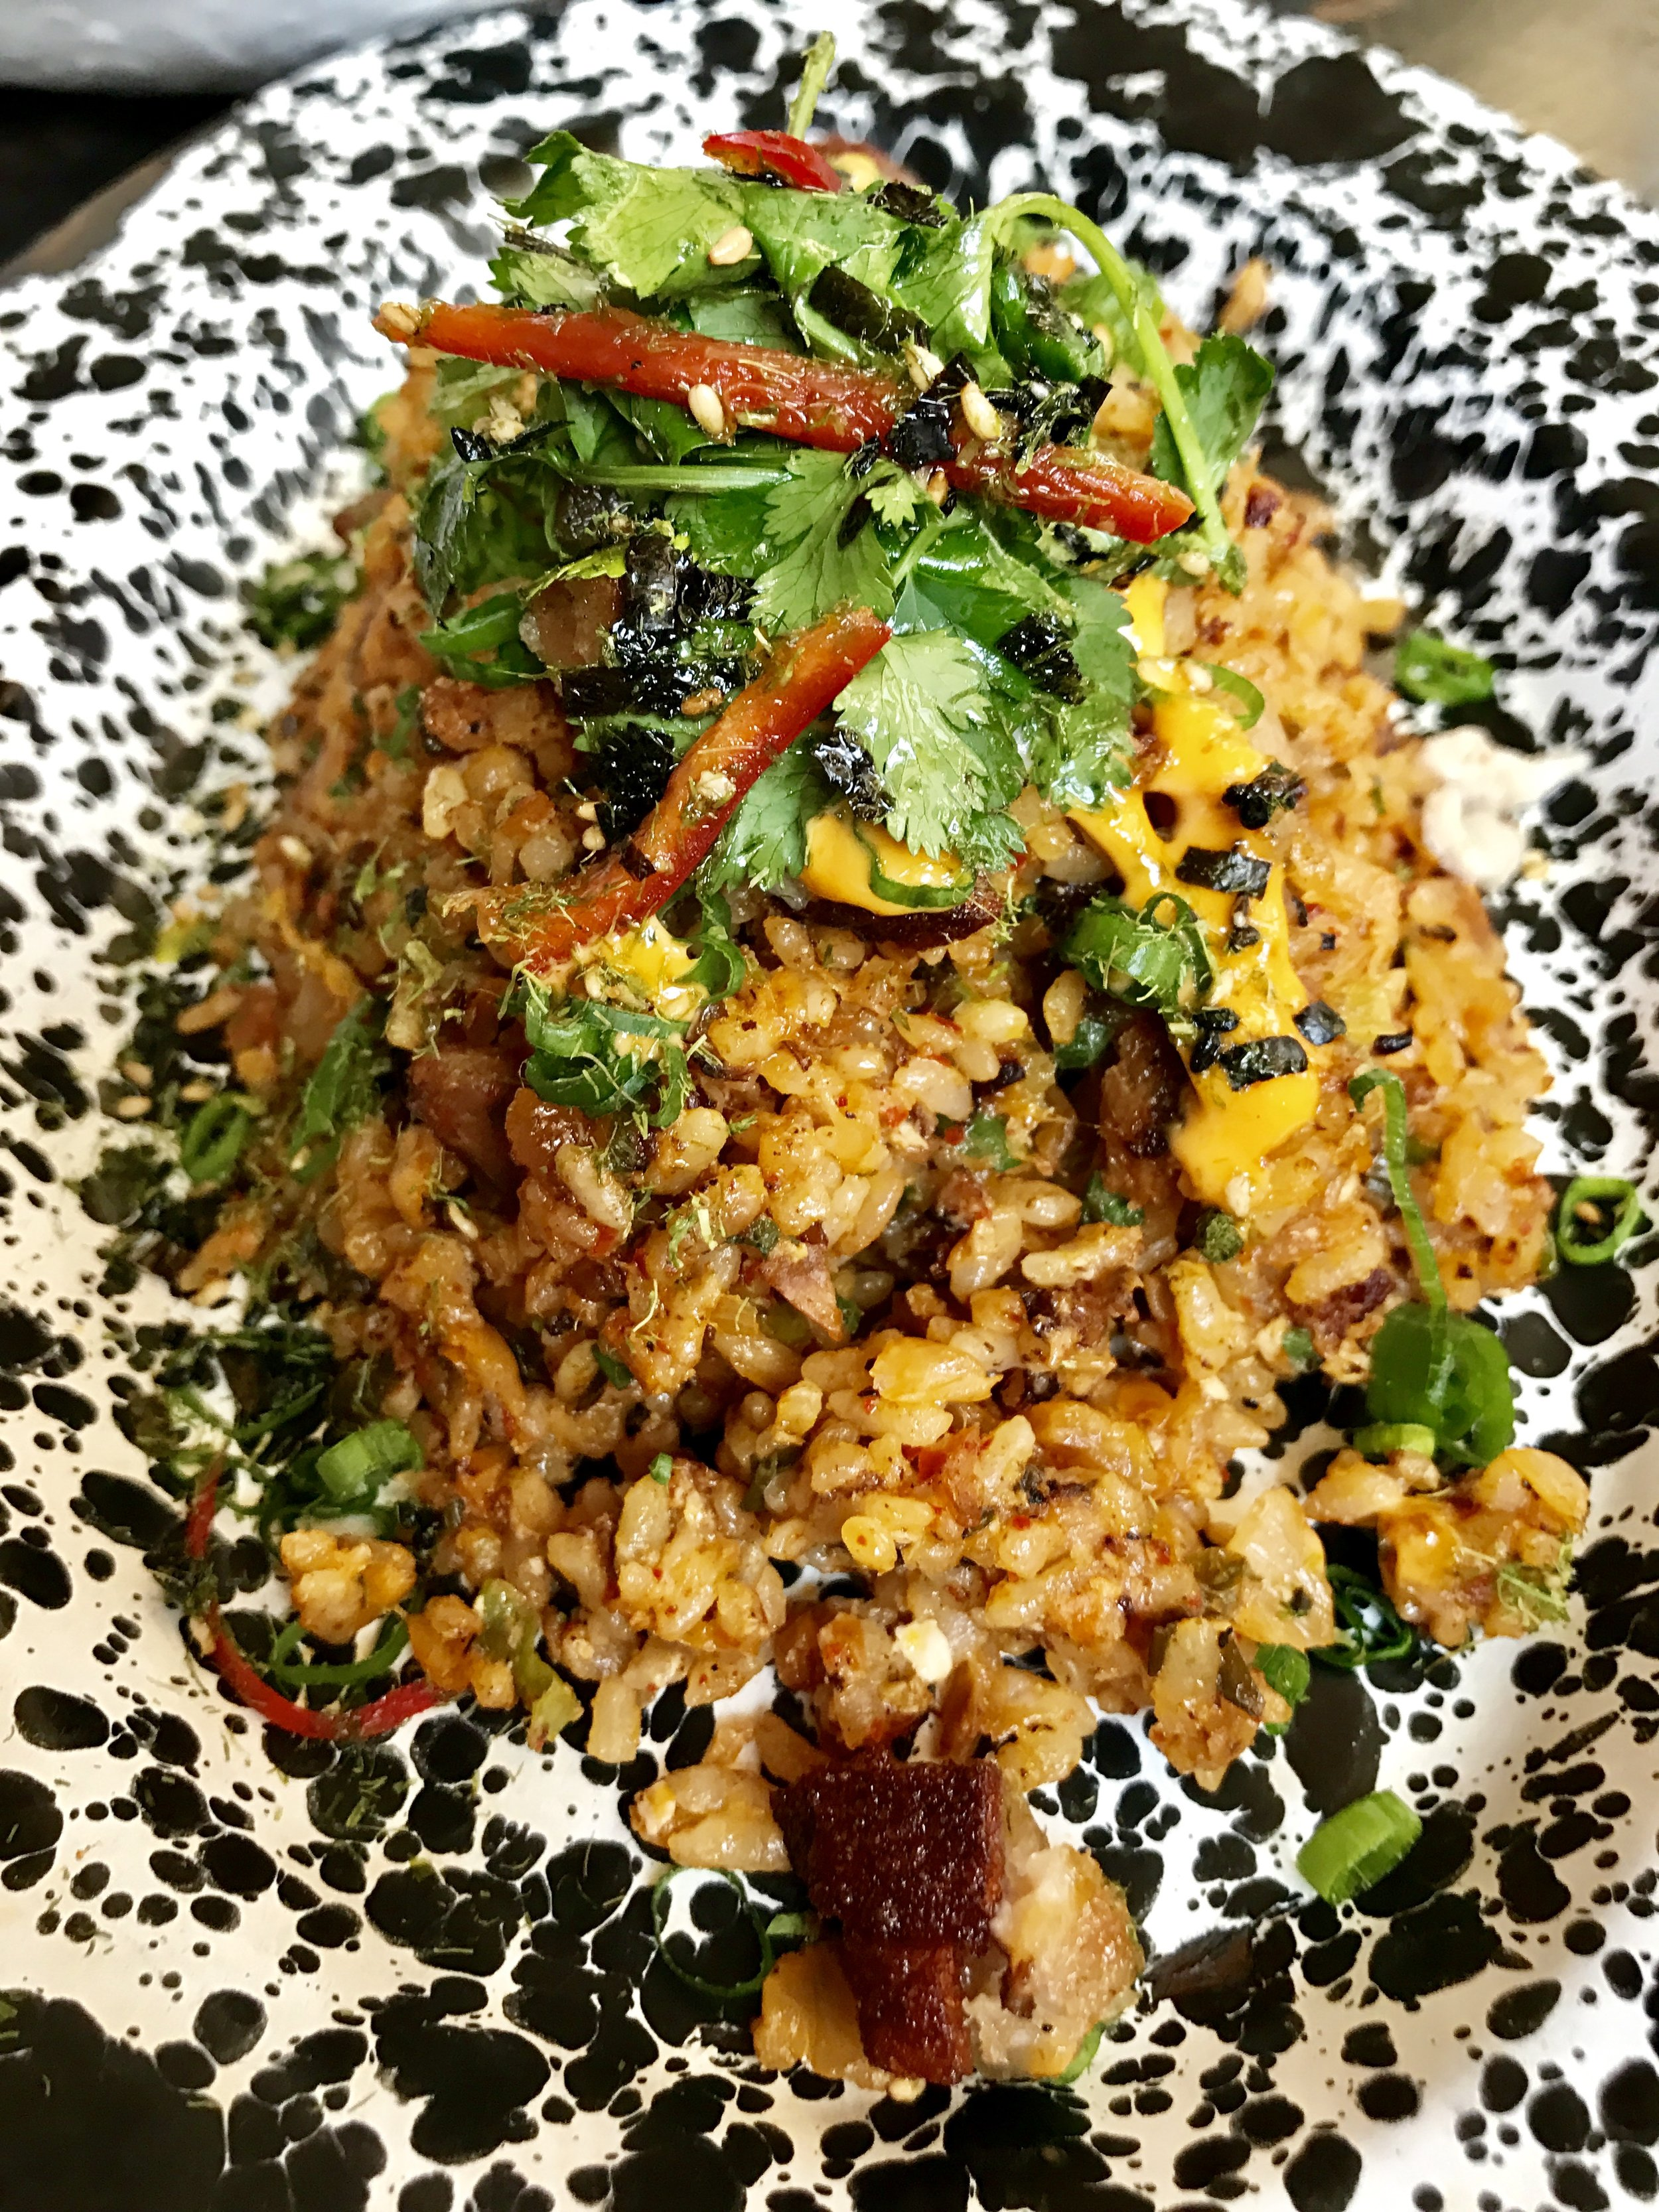 Pork fried rice copy.jpg